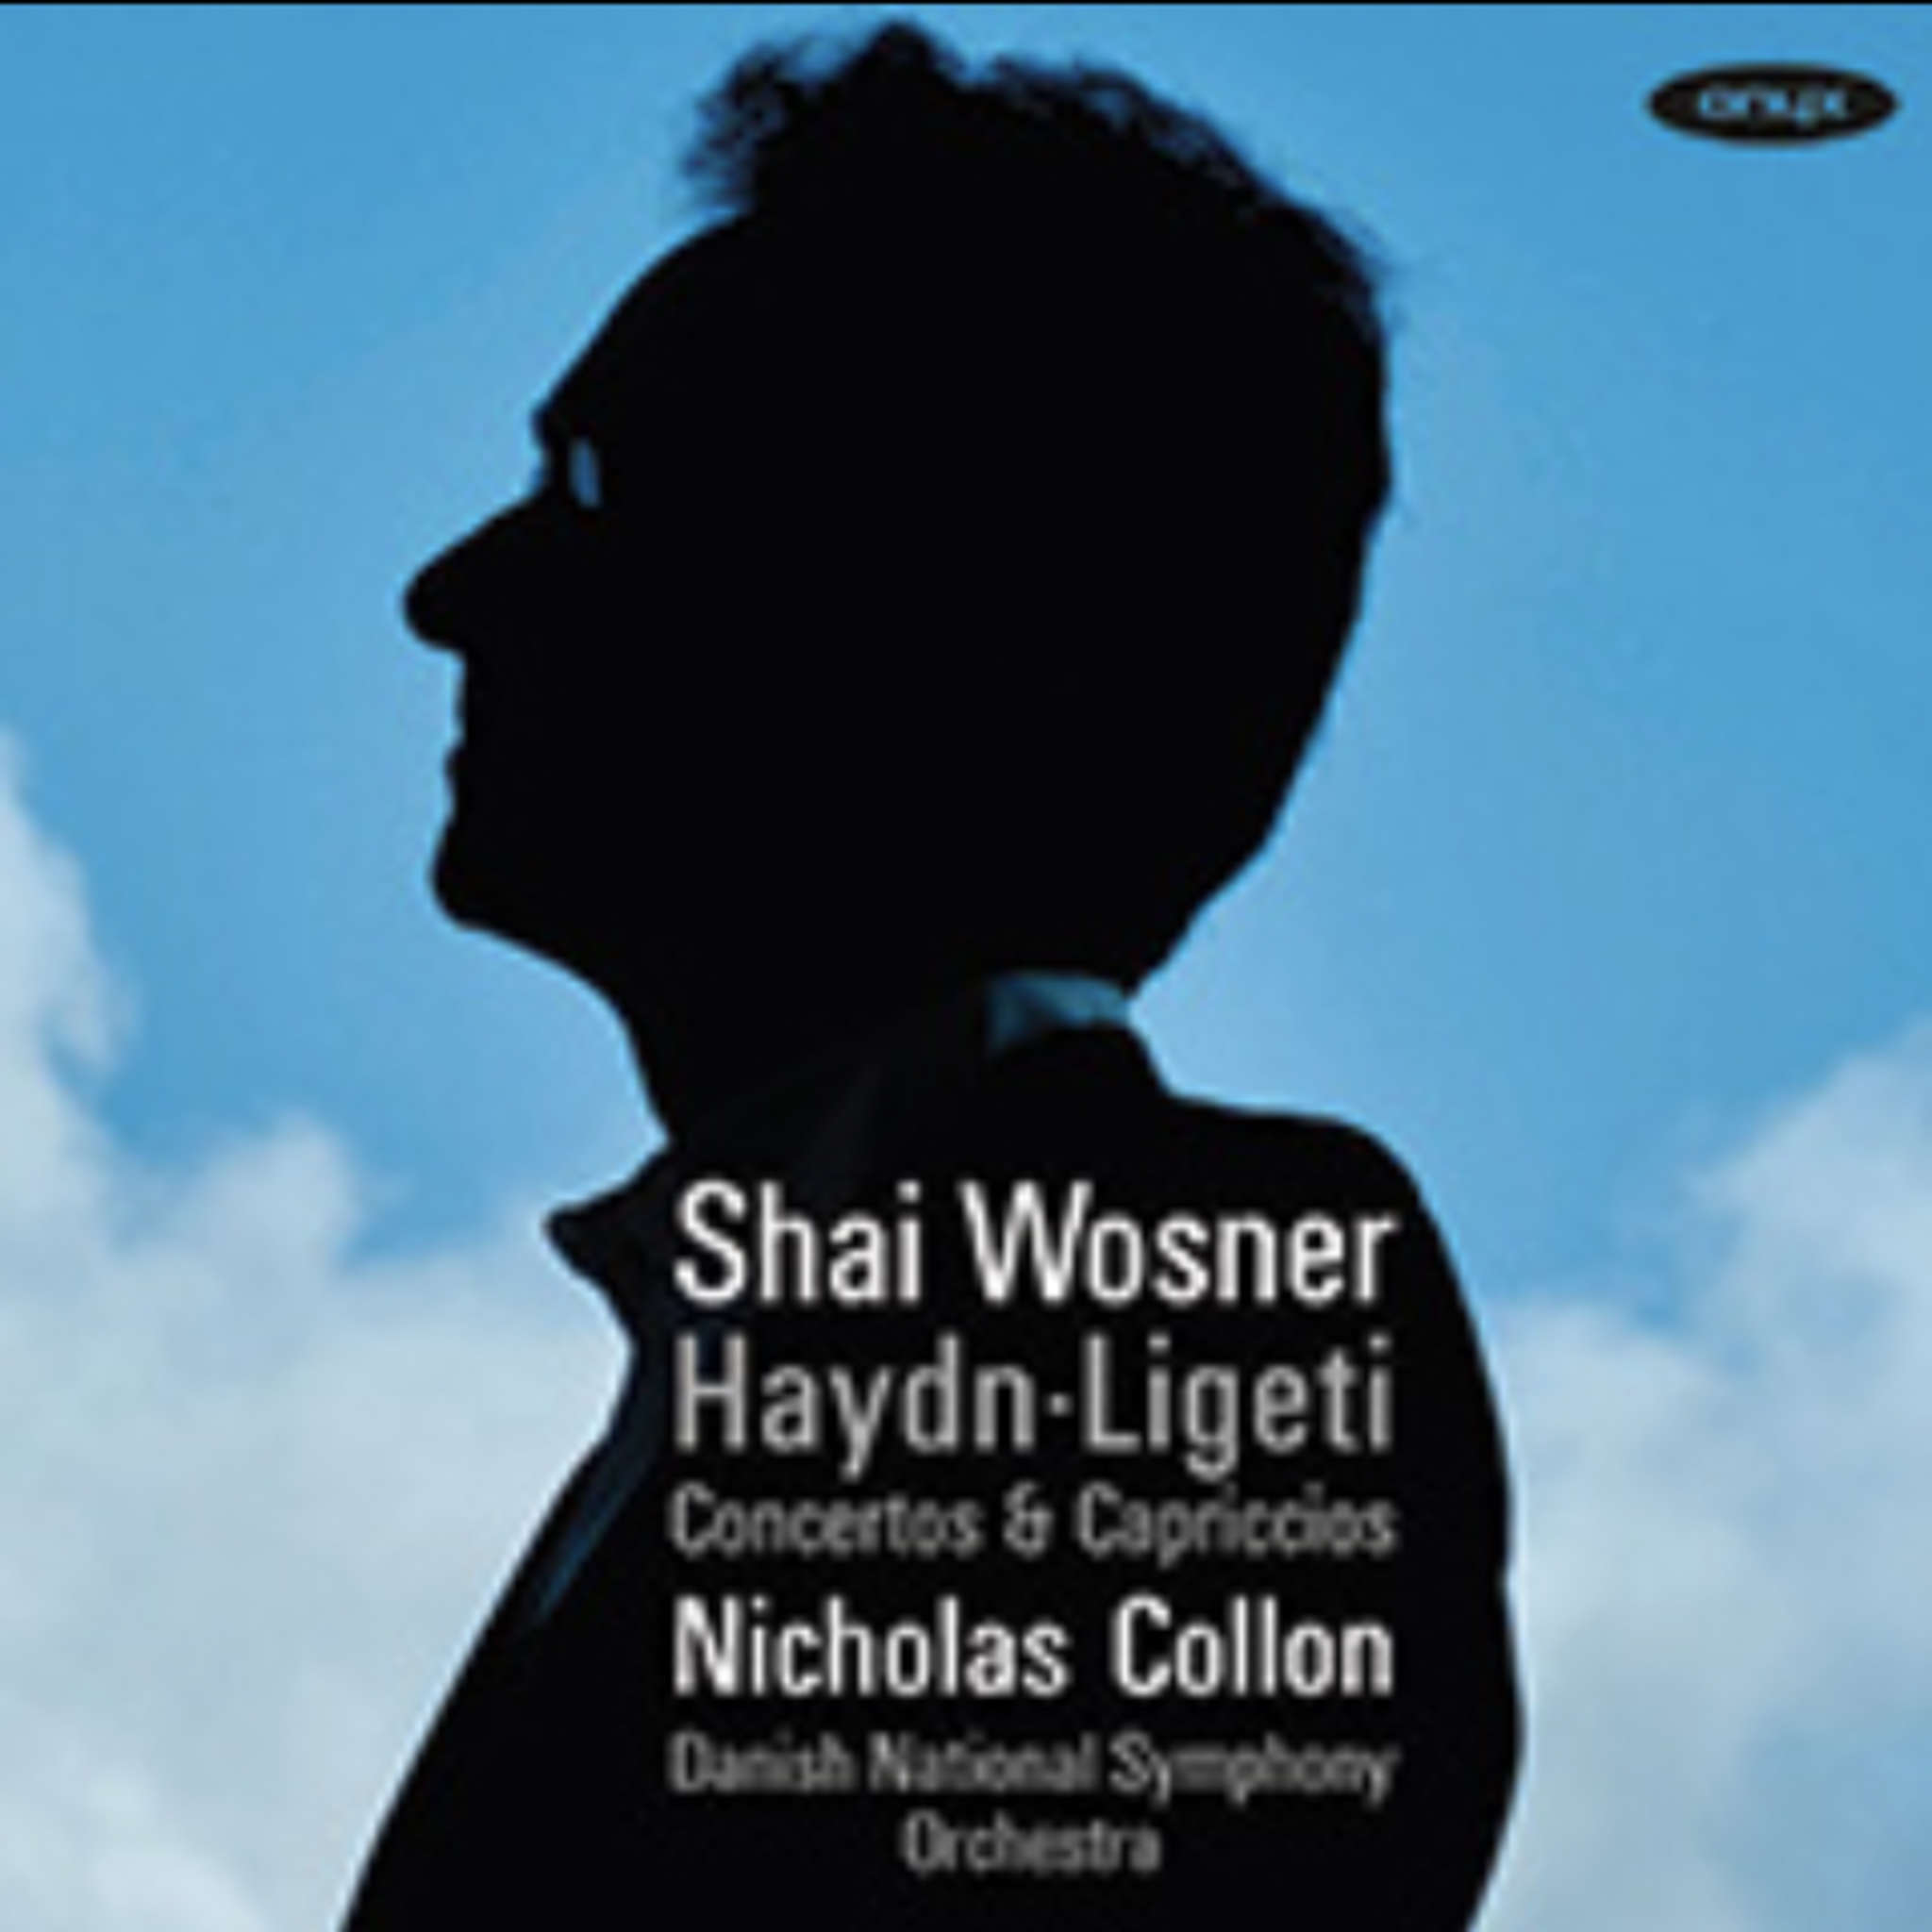 Shai Wosner´s CD compares Haydn and Ligeti.